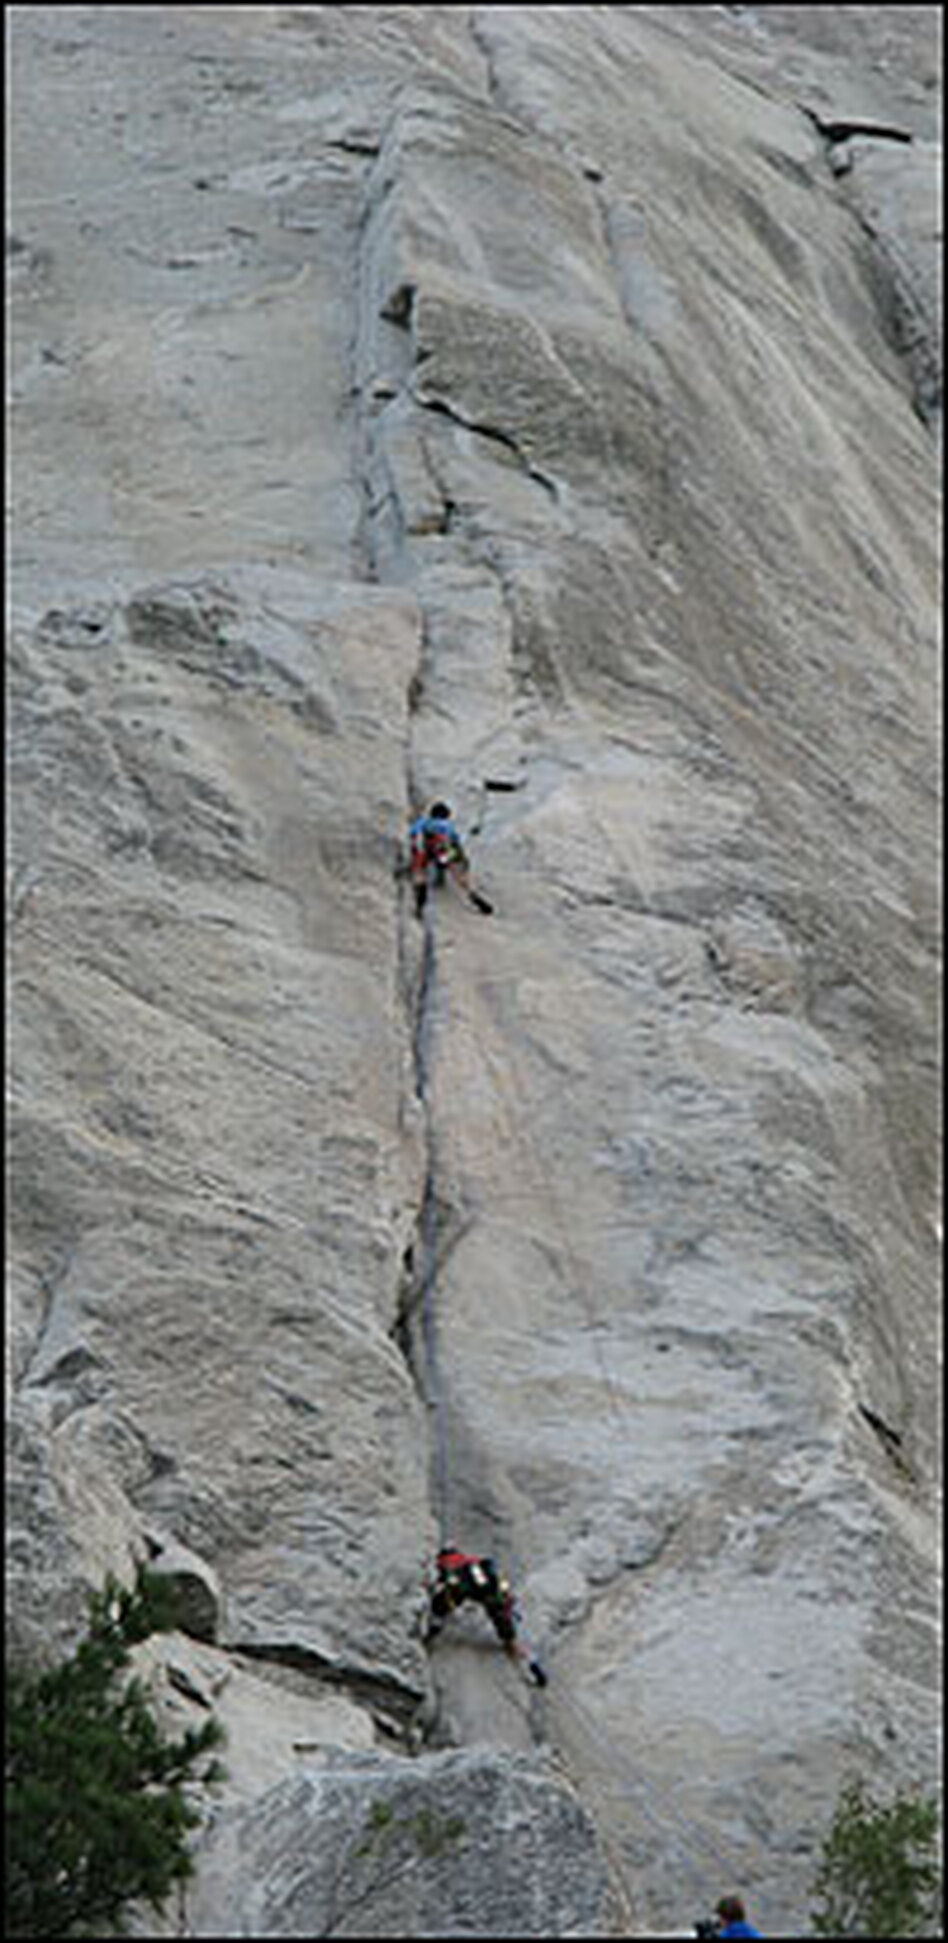 The American-Japanese climbing duo of Hans Florine and Yuji Hirayama climbed the nose of El Capitan on Wednesday, with Hirayama leading.